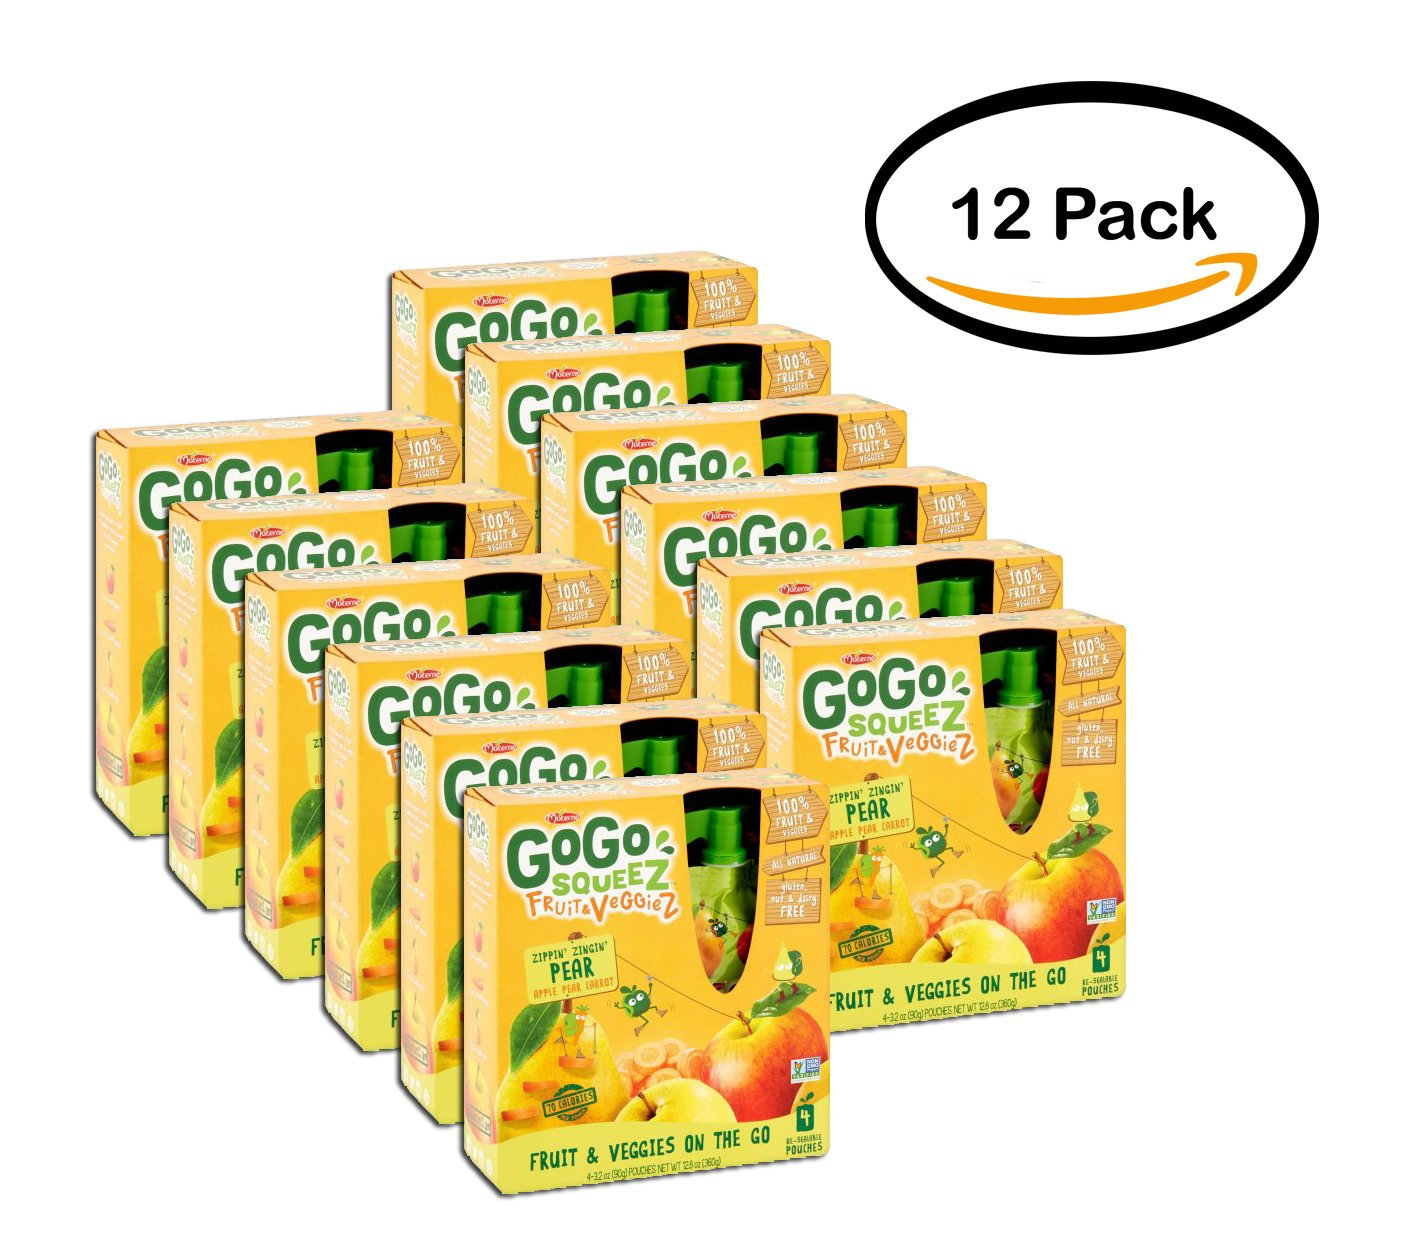 PACK OF 12 - GoGo Squeez Fruit & Veggiez On The Go Apple Pear Carrot - 4 CT by Materne